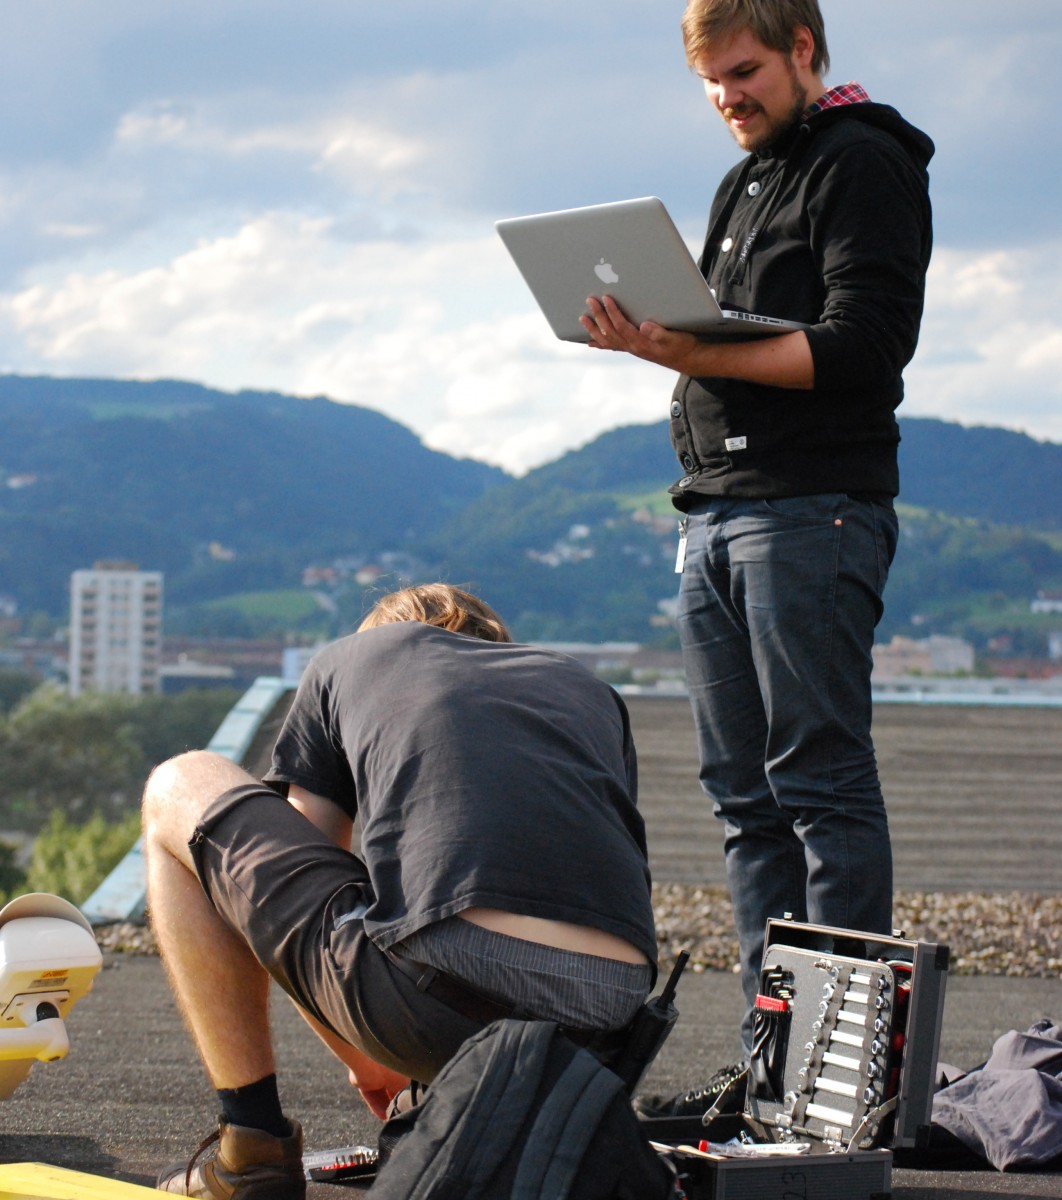 Configuring Action Flocking on the roof